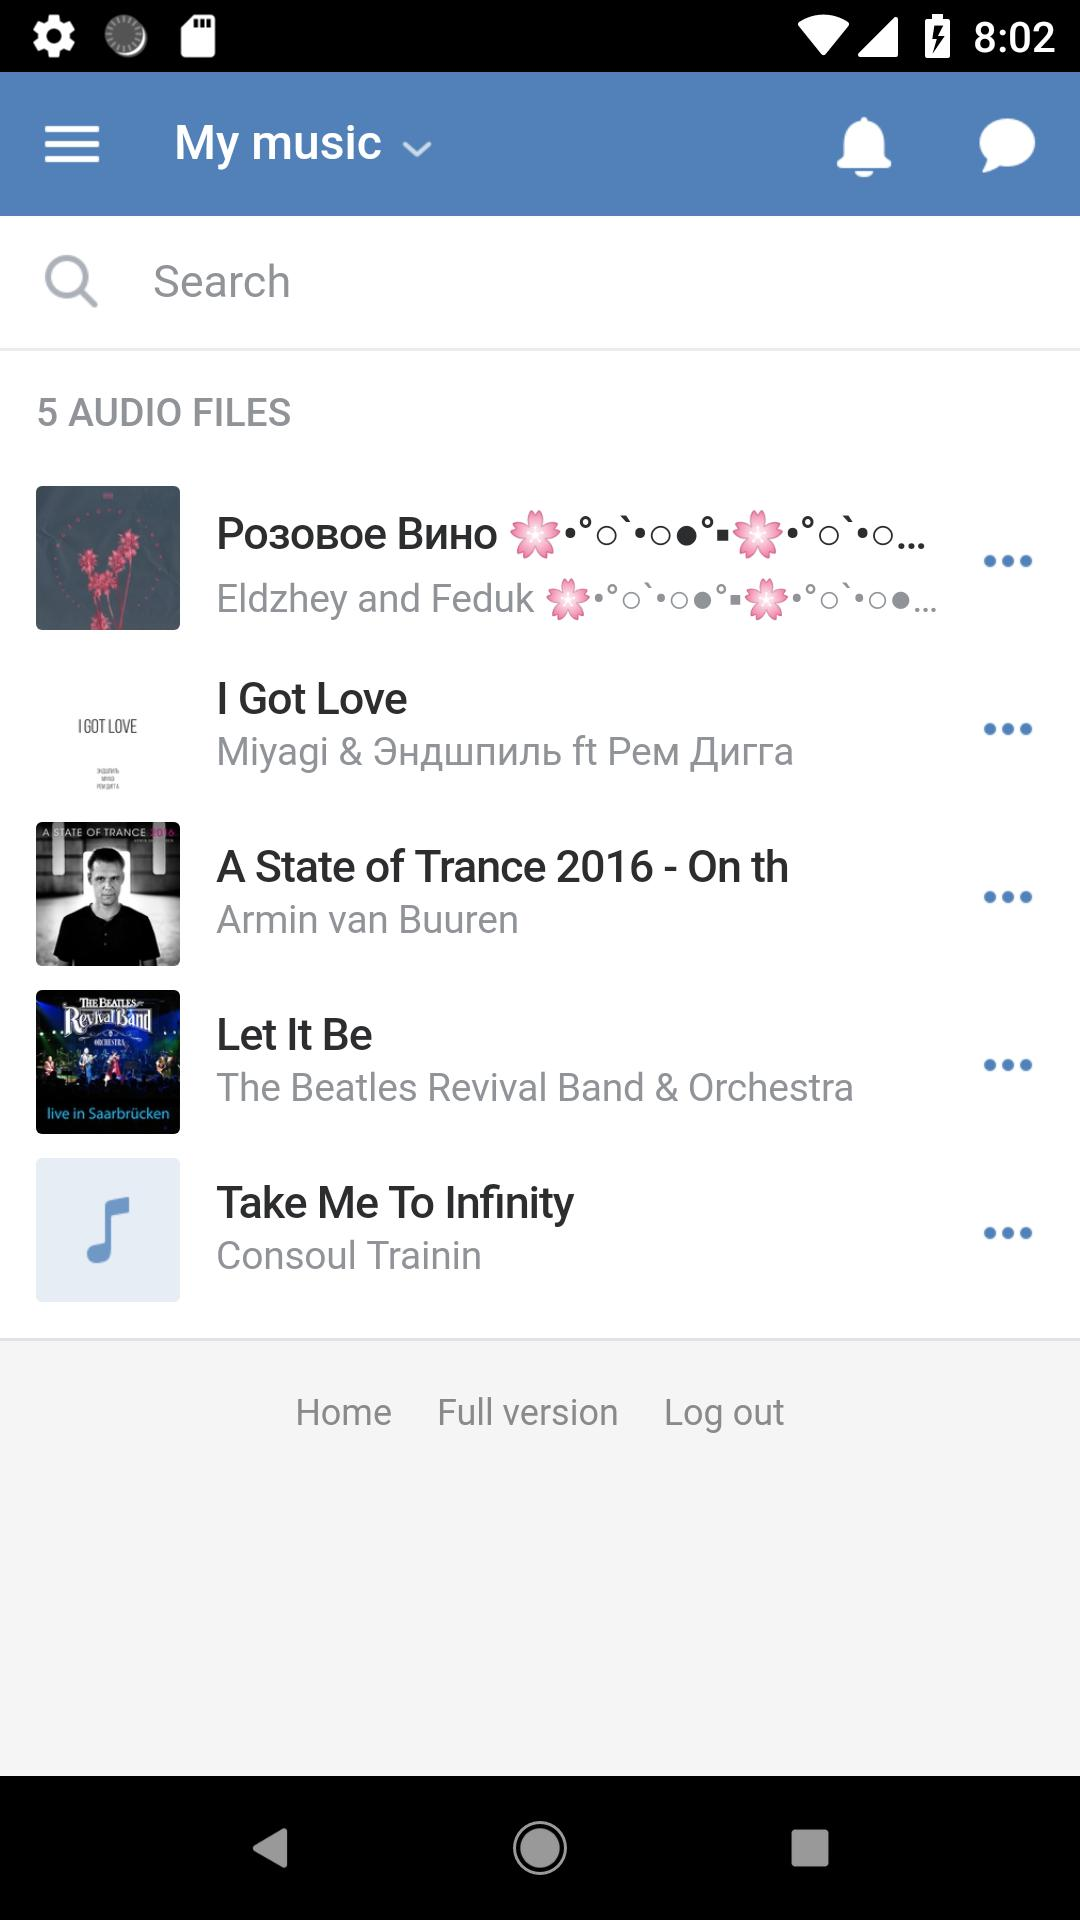 VK music for Android - APK Download